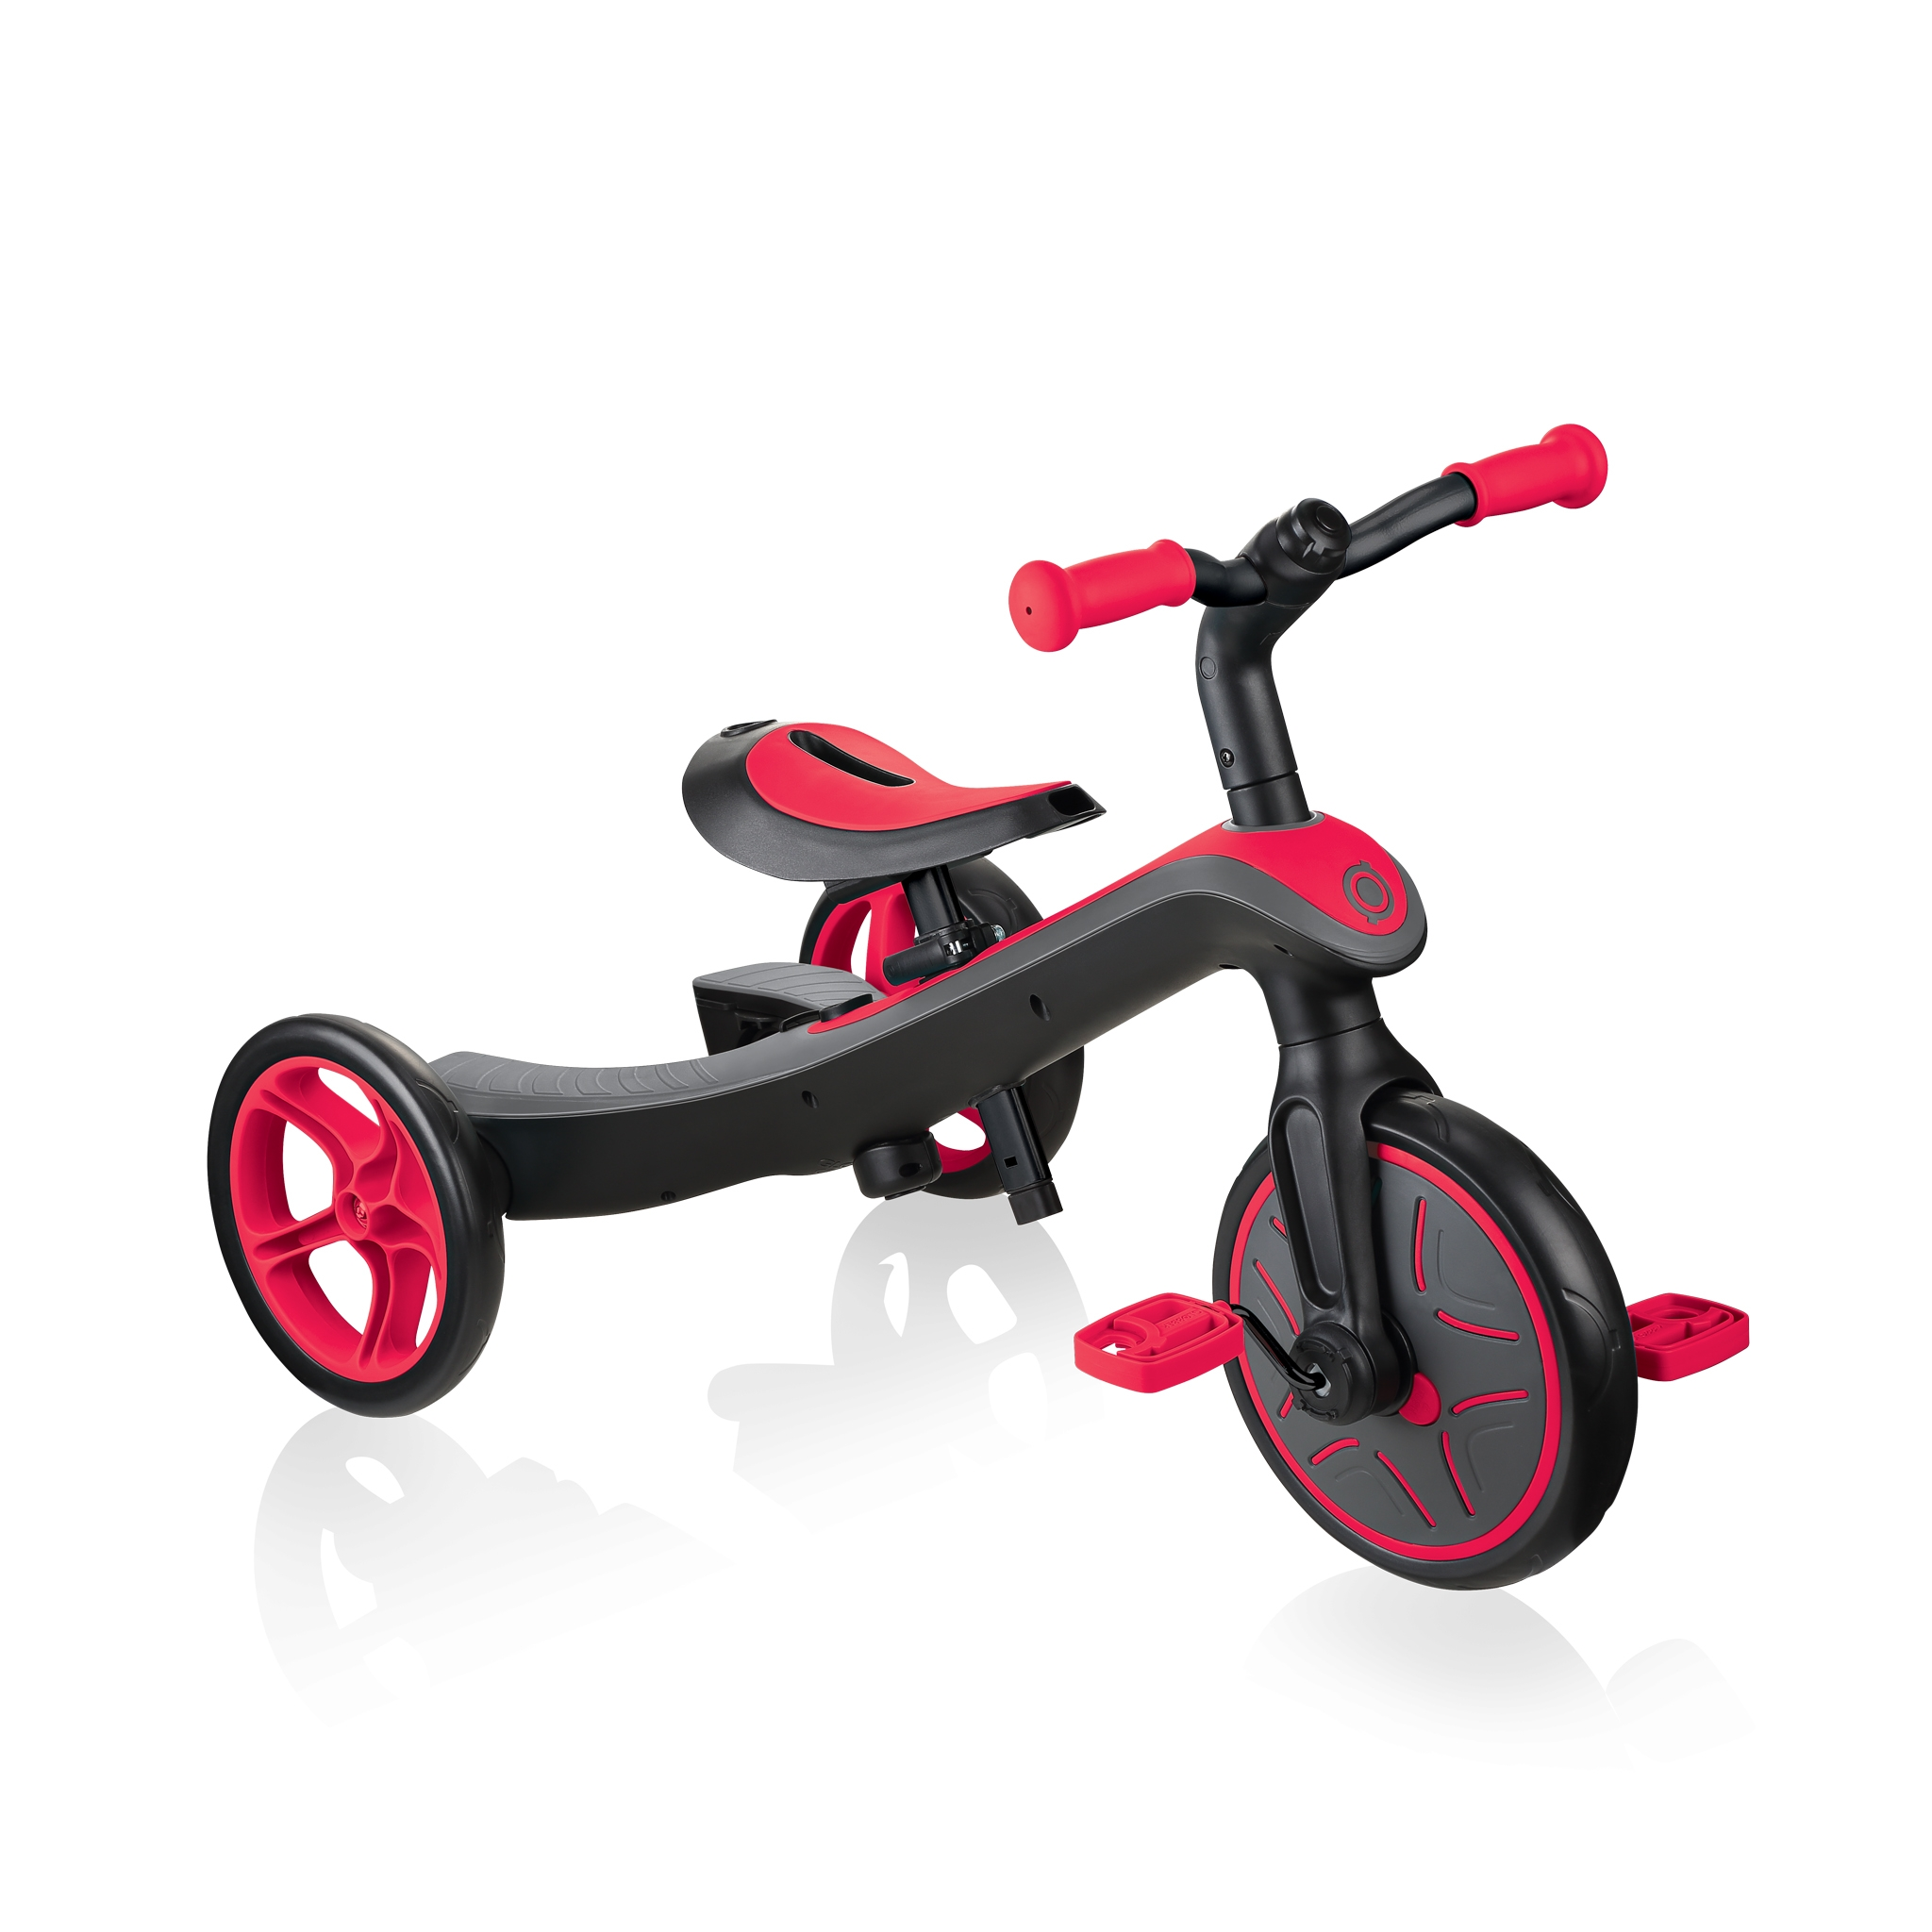 Globber-EXPLORER-TRIKE-2in1-all-in-one-training-tricycle-and-kids-balance-bike-stage1-training-trike_new-red